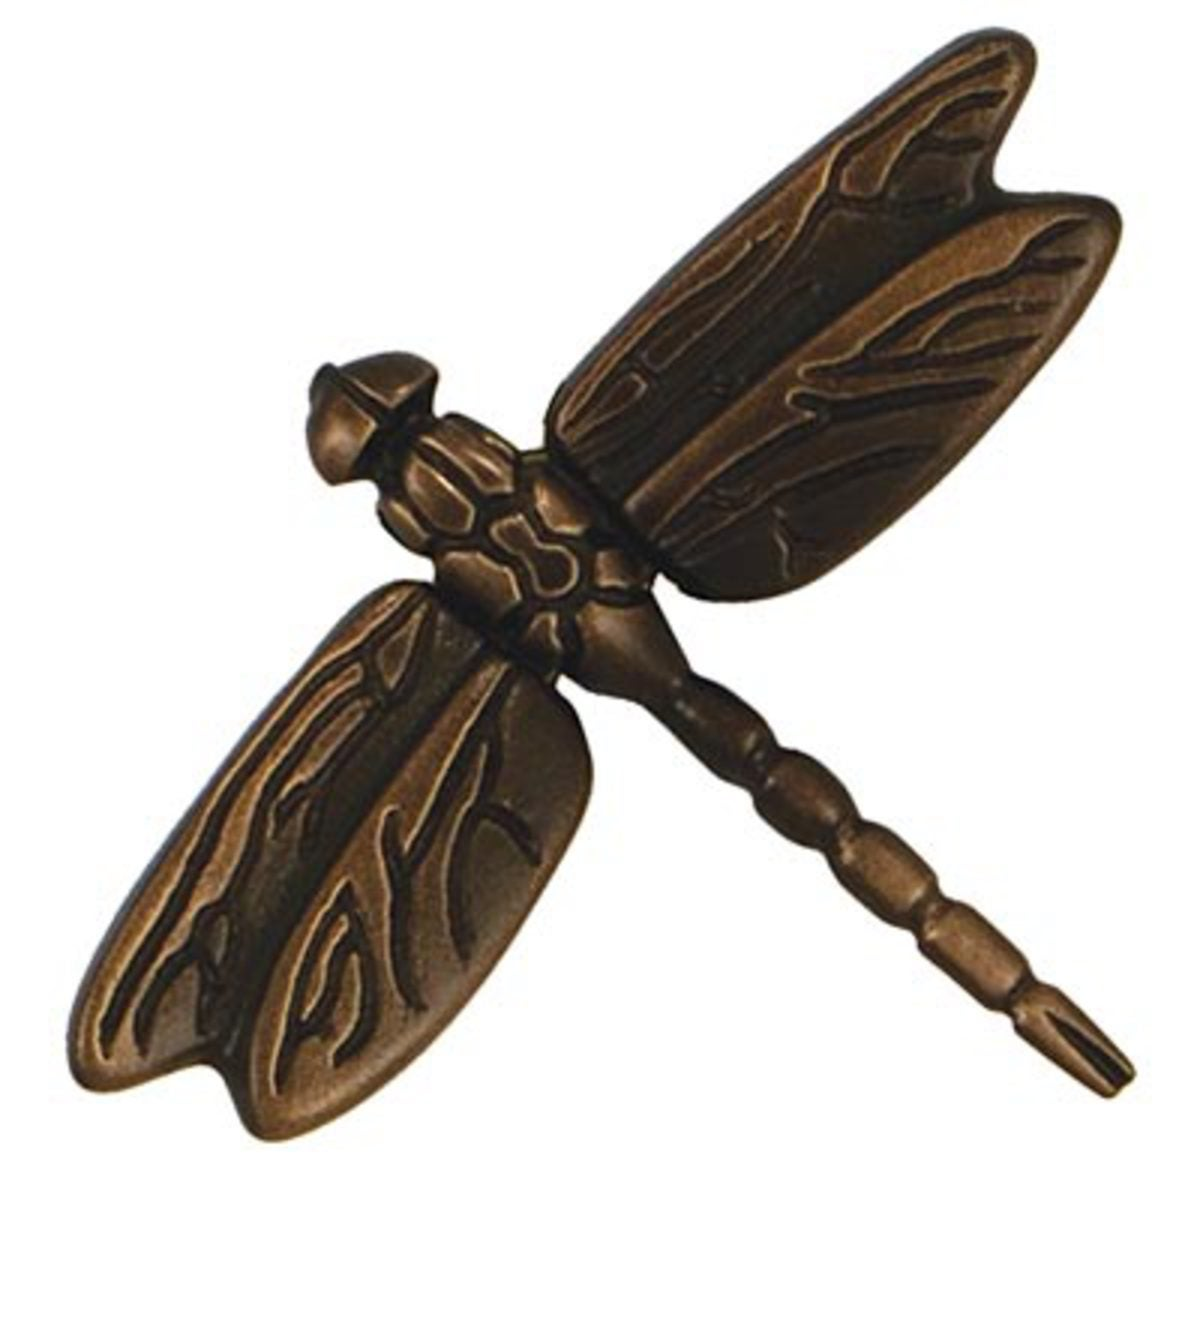 Sand-Cast Dragonfly Doorbell Ringer By Michael Healy - Brass/Bronze